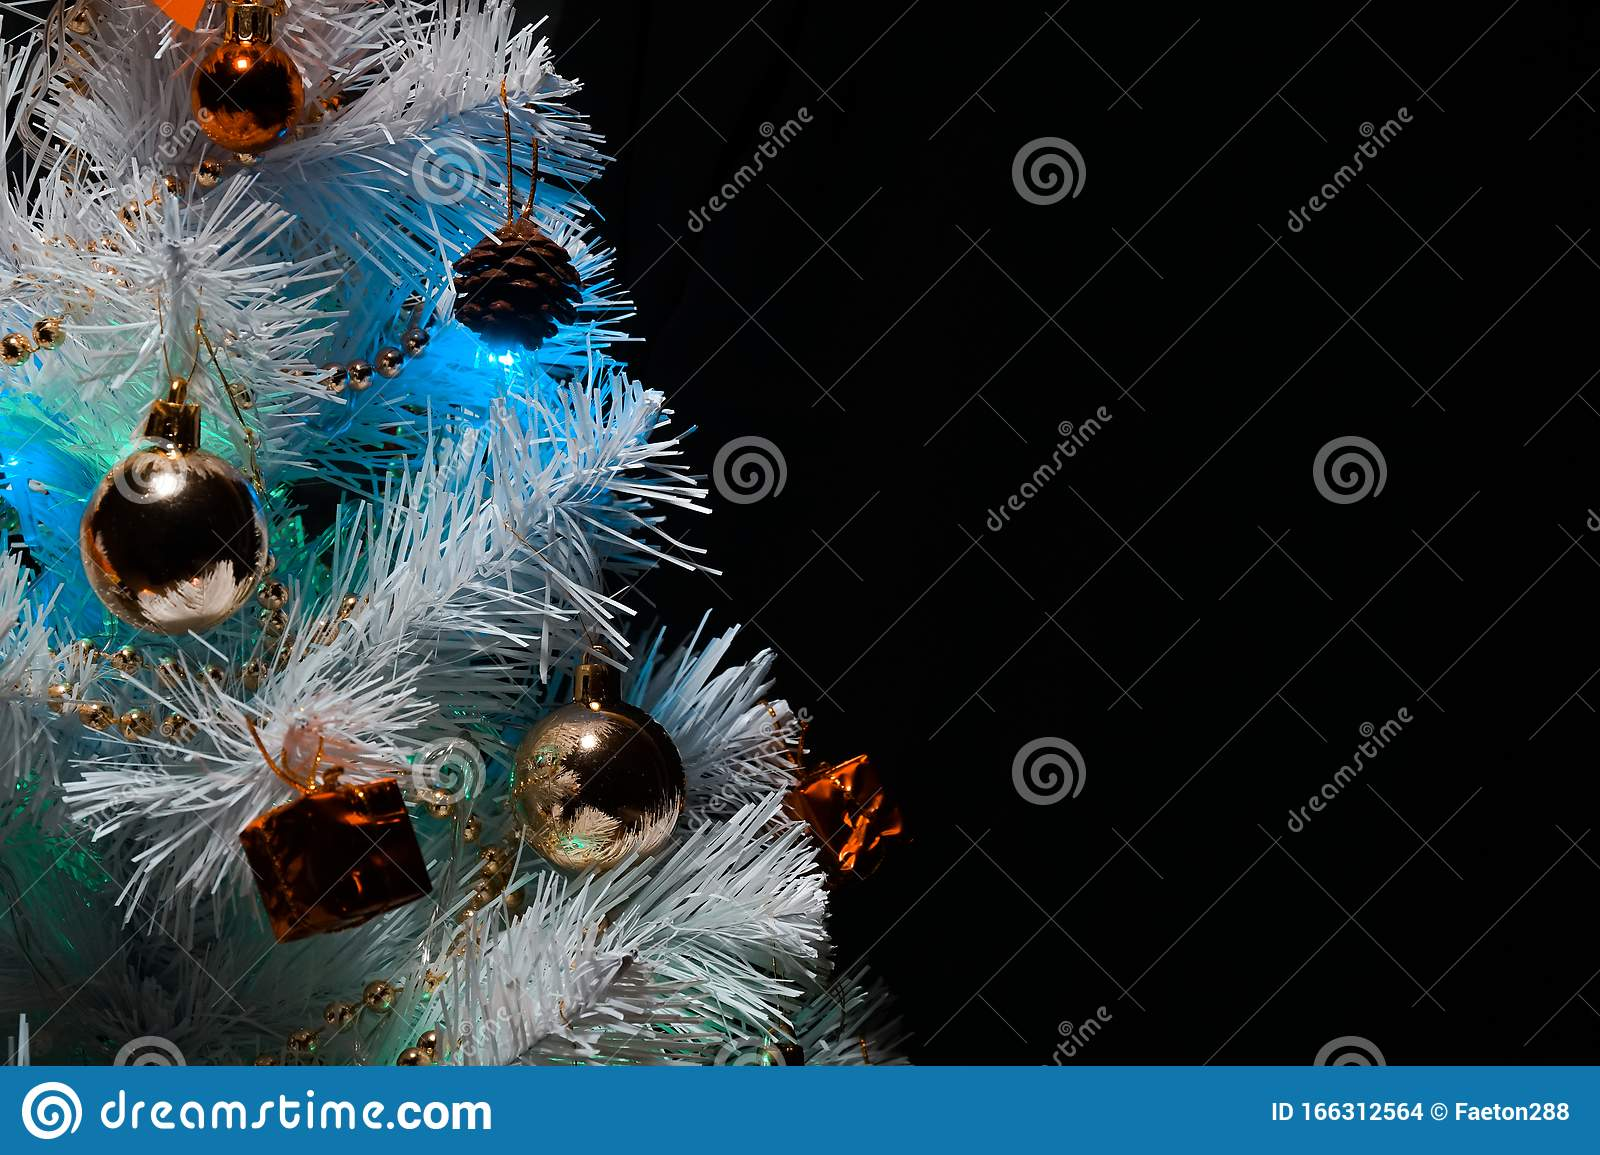 Christmas Tree With Decorations Christmas Tree On A Dark Background Empty Space For A Logo Stock Photo Image Of Flora Decorative 166312564